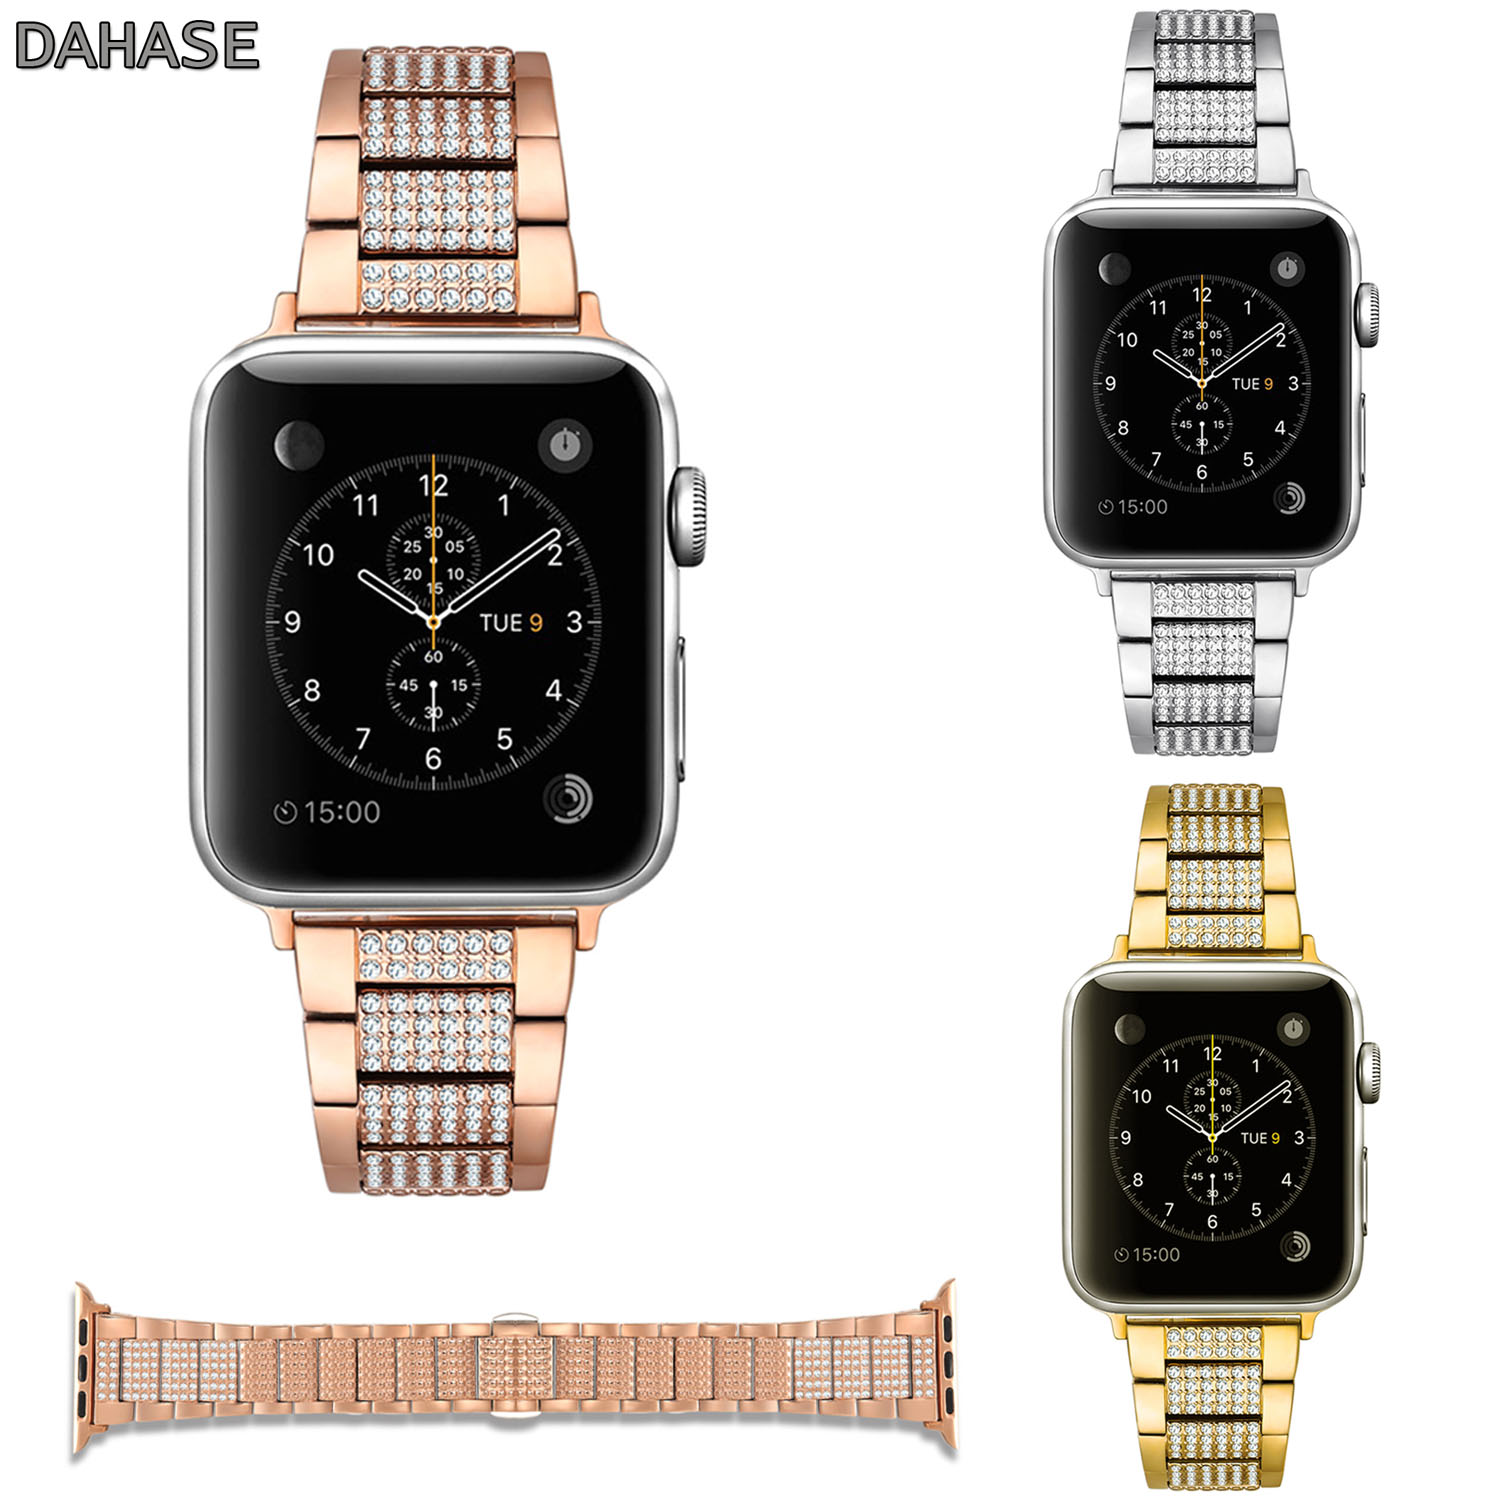 DAHASE Women's Bling Diamond Bracelet for Apple Watch Series 1 2 3 Band Rhinestone Stainless Steel Link Watch Strap 42mm 38mm dahase bling rhinestone link bracelet for apple watch band stainless steel strap for iwatch 38mm 42mm series 1 2 3 belt